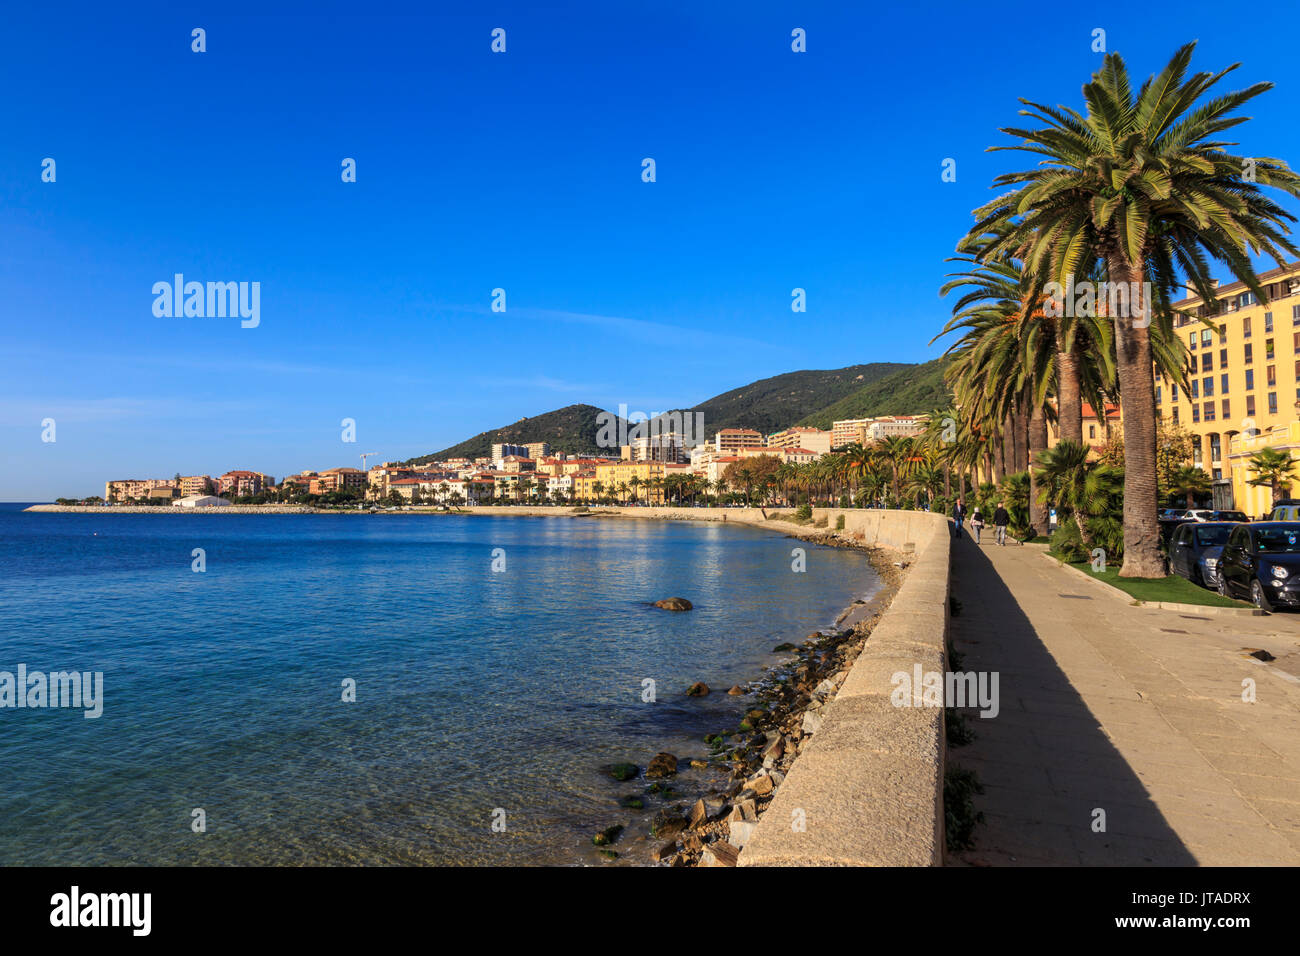 Saint Francois beach promenade with palm trees, morning light, Ajaccio, Island of Corsica, Mediterranean, France, Mediterranean - Stock Image